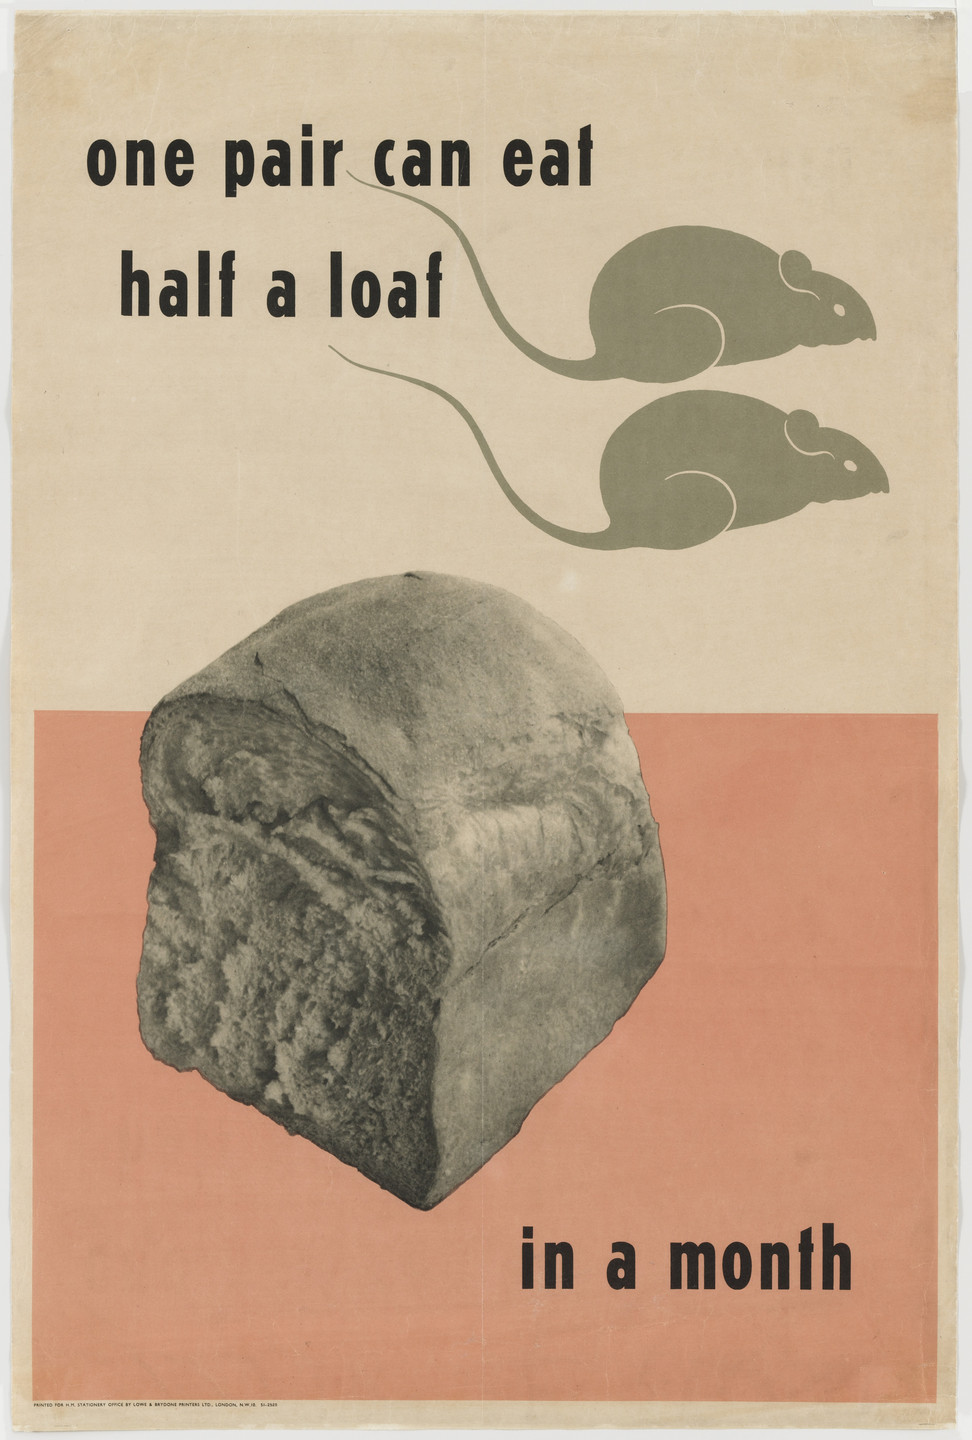 Herbert Tomlinson. One Pair Can Eat Half a Loaf in a Month. c.1941